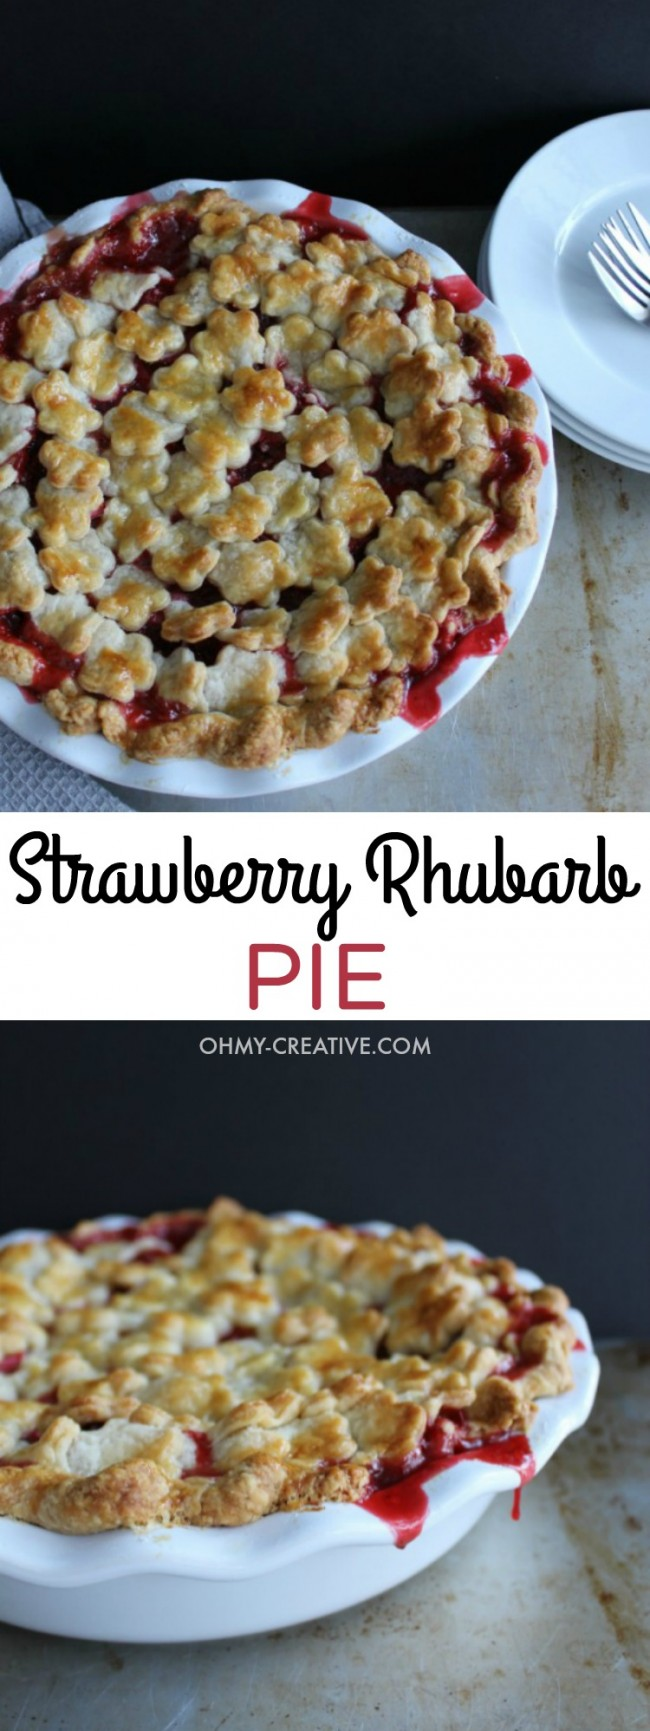 This Strawberry Rhubarb Pie features an all-butter, flaky crust with a sweet and tart filling made with fresh strawberries and rhubarb - YUM! | OHMY-CREATIVE.COM